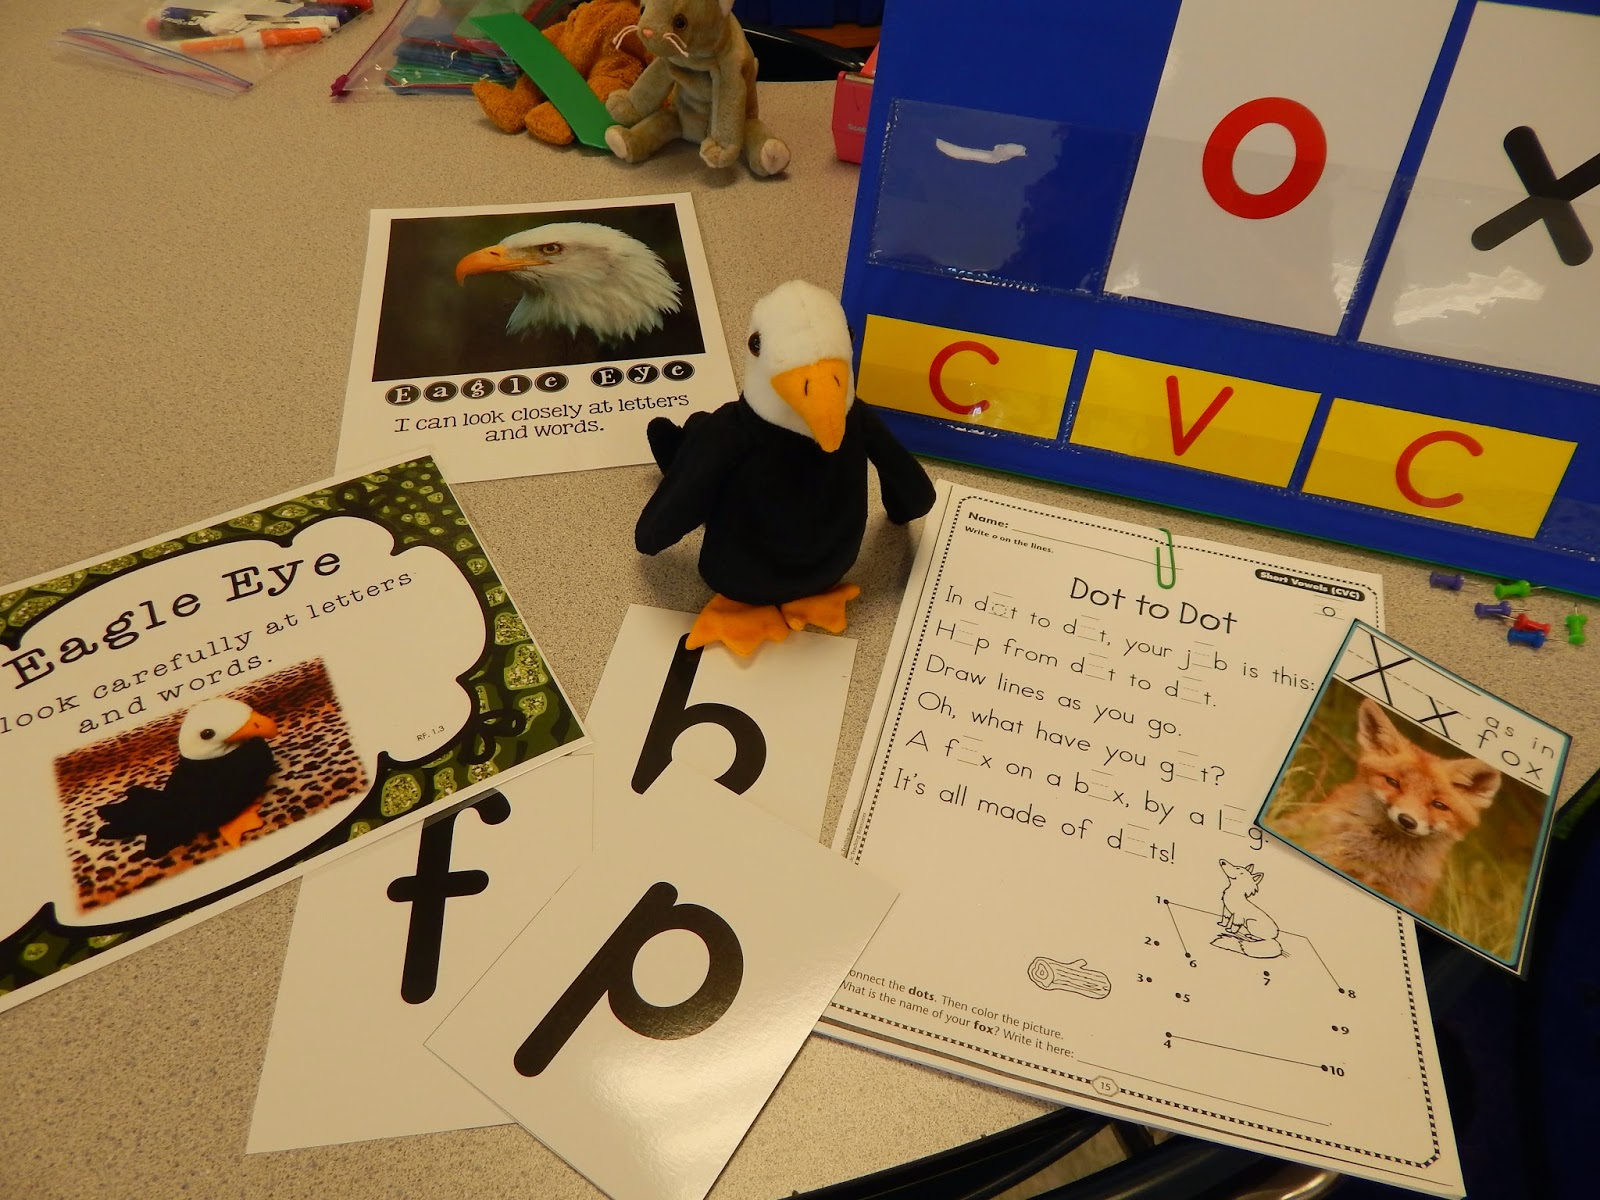 http://www.teacherspayteachers.com/Product/Beanie-Baby-Reading-Strategy-Posters-for-the-Common-Core-Classroom-277957